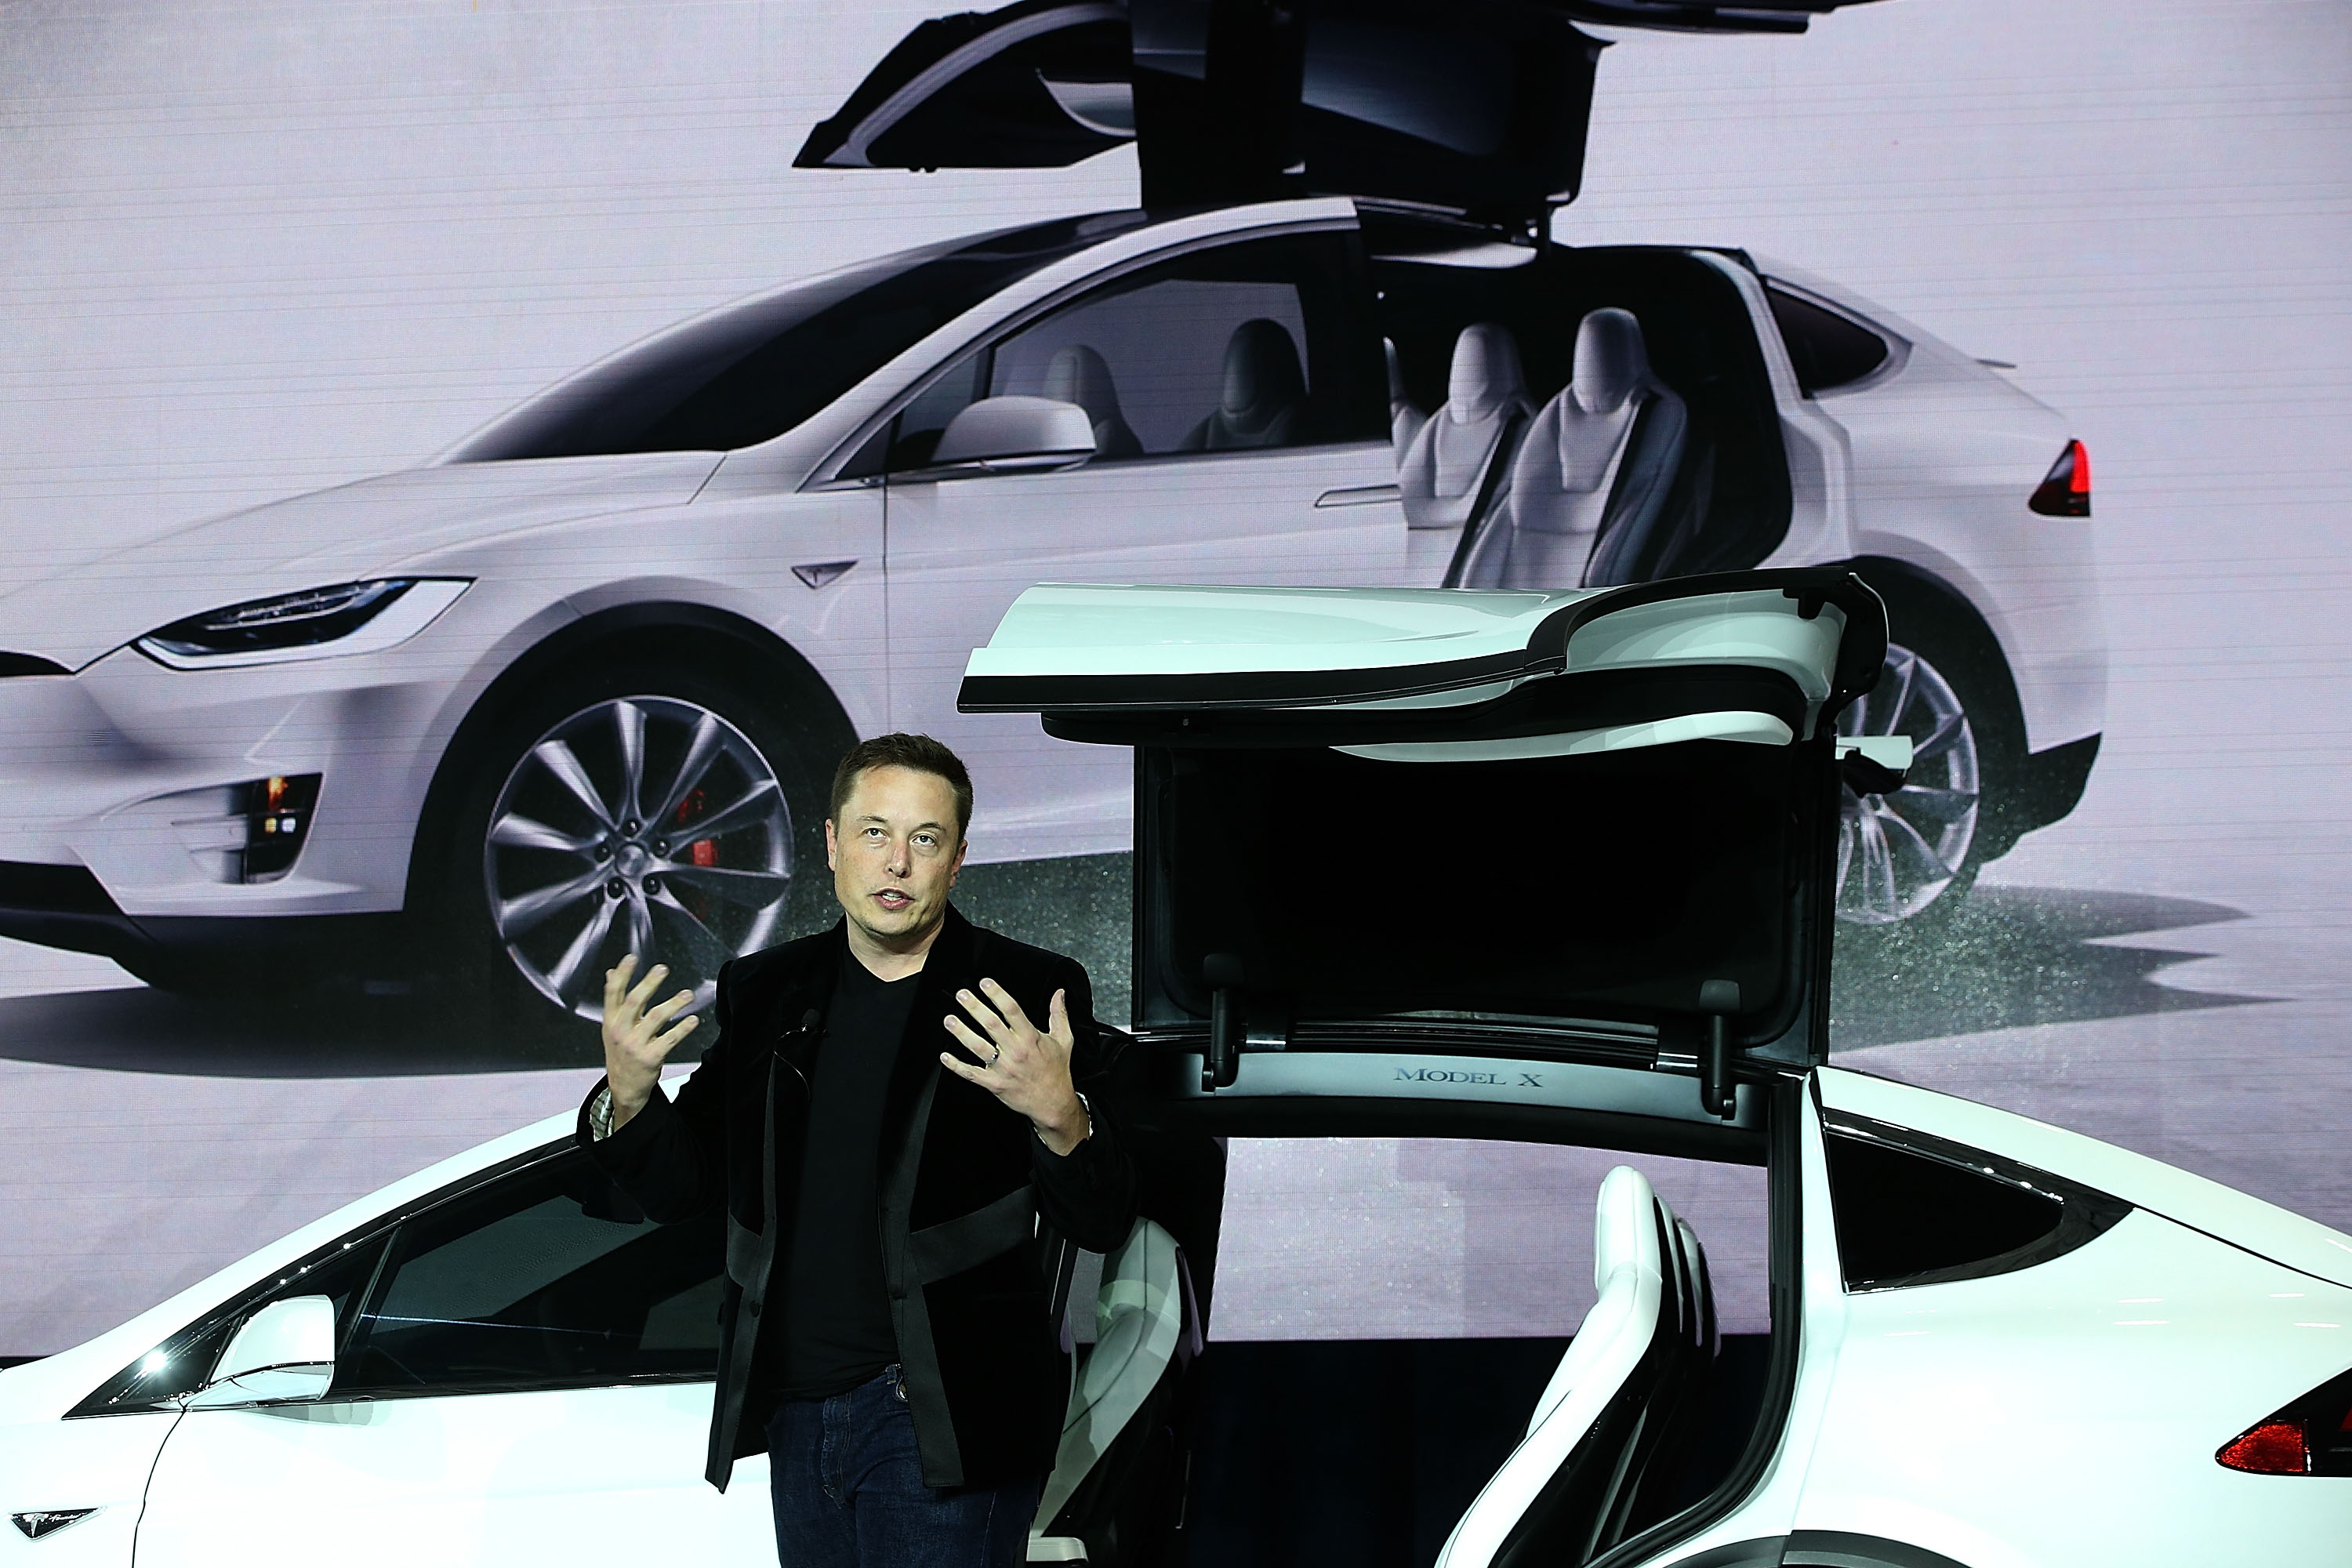 Tesla CEO Elon Musk speaks during an event to launch the new Tesla Model X Crossover SUV on Sept. 29, 2015 in Fremont, Calif.